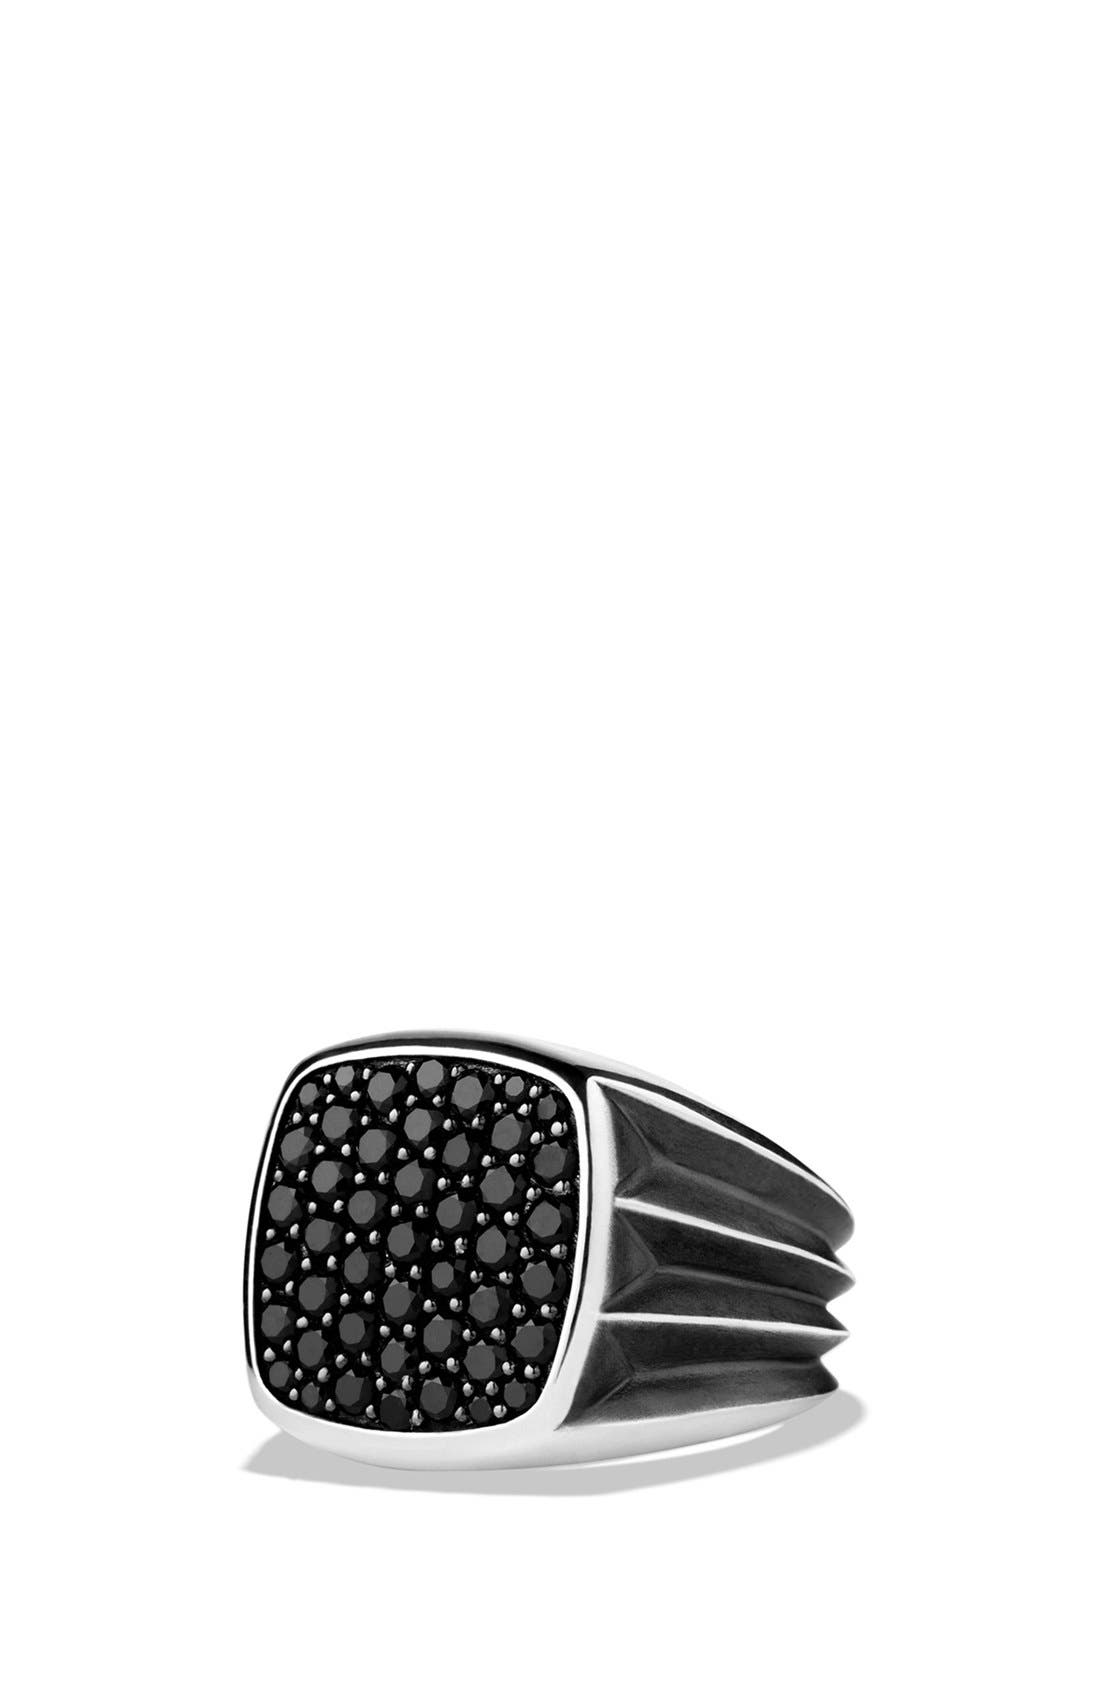 'Knife Edge' Signet Ring with Black Diamonds,                         Main,                         color, Black Diamond